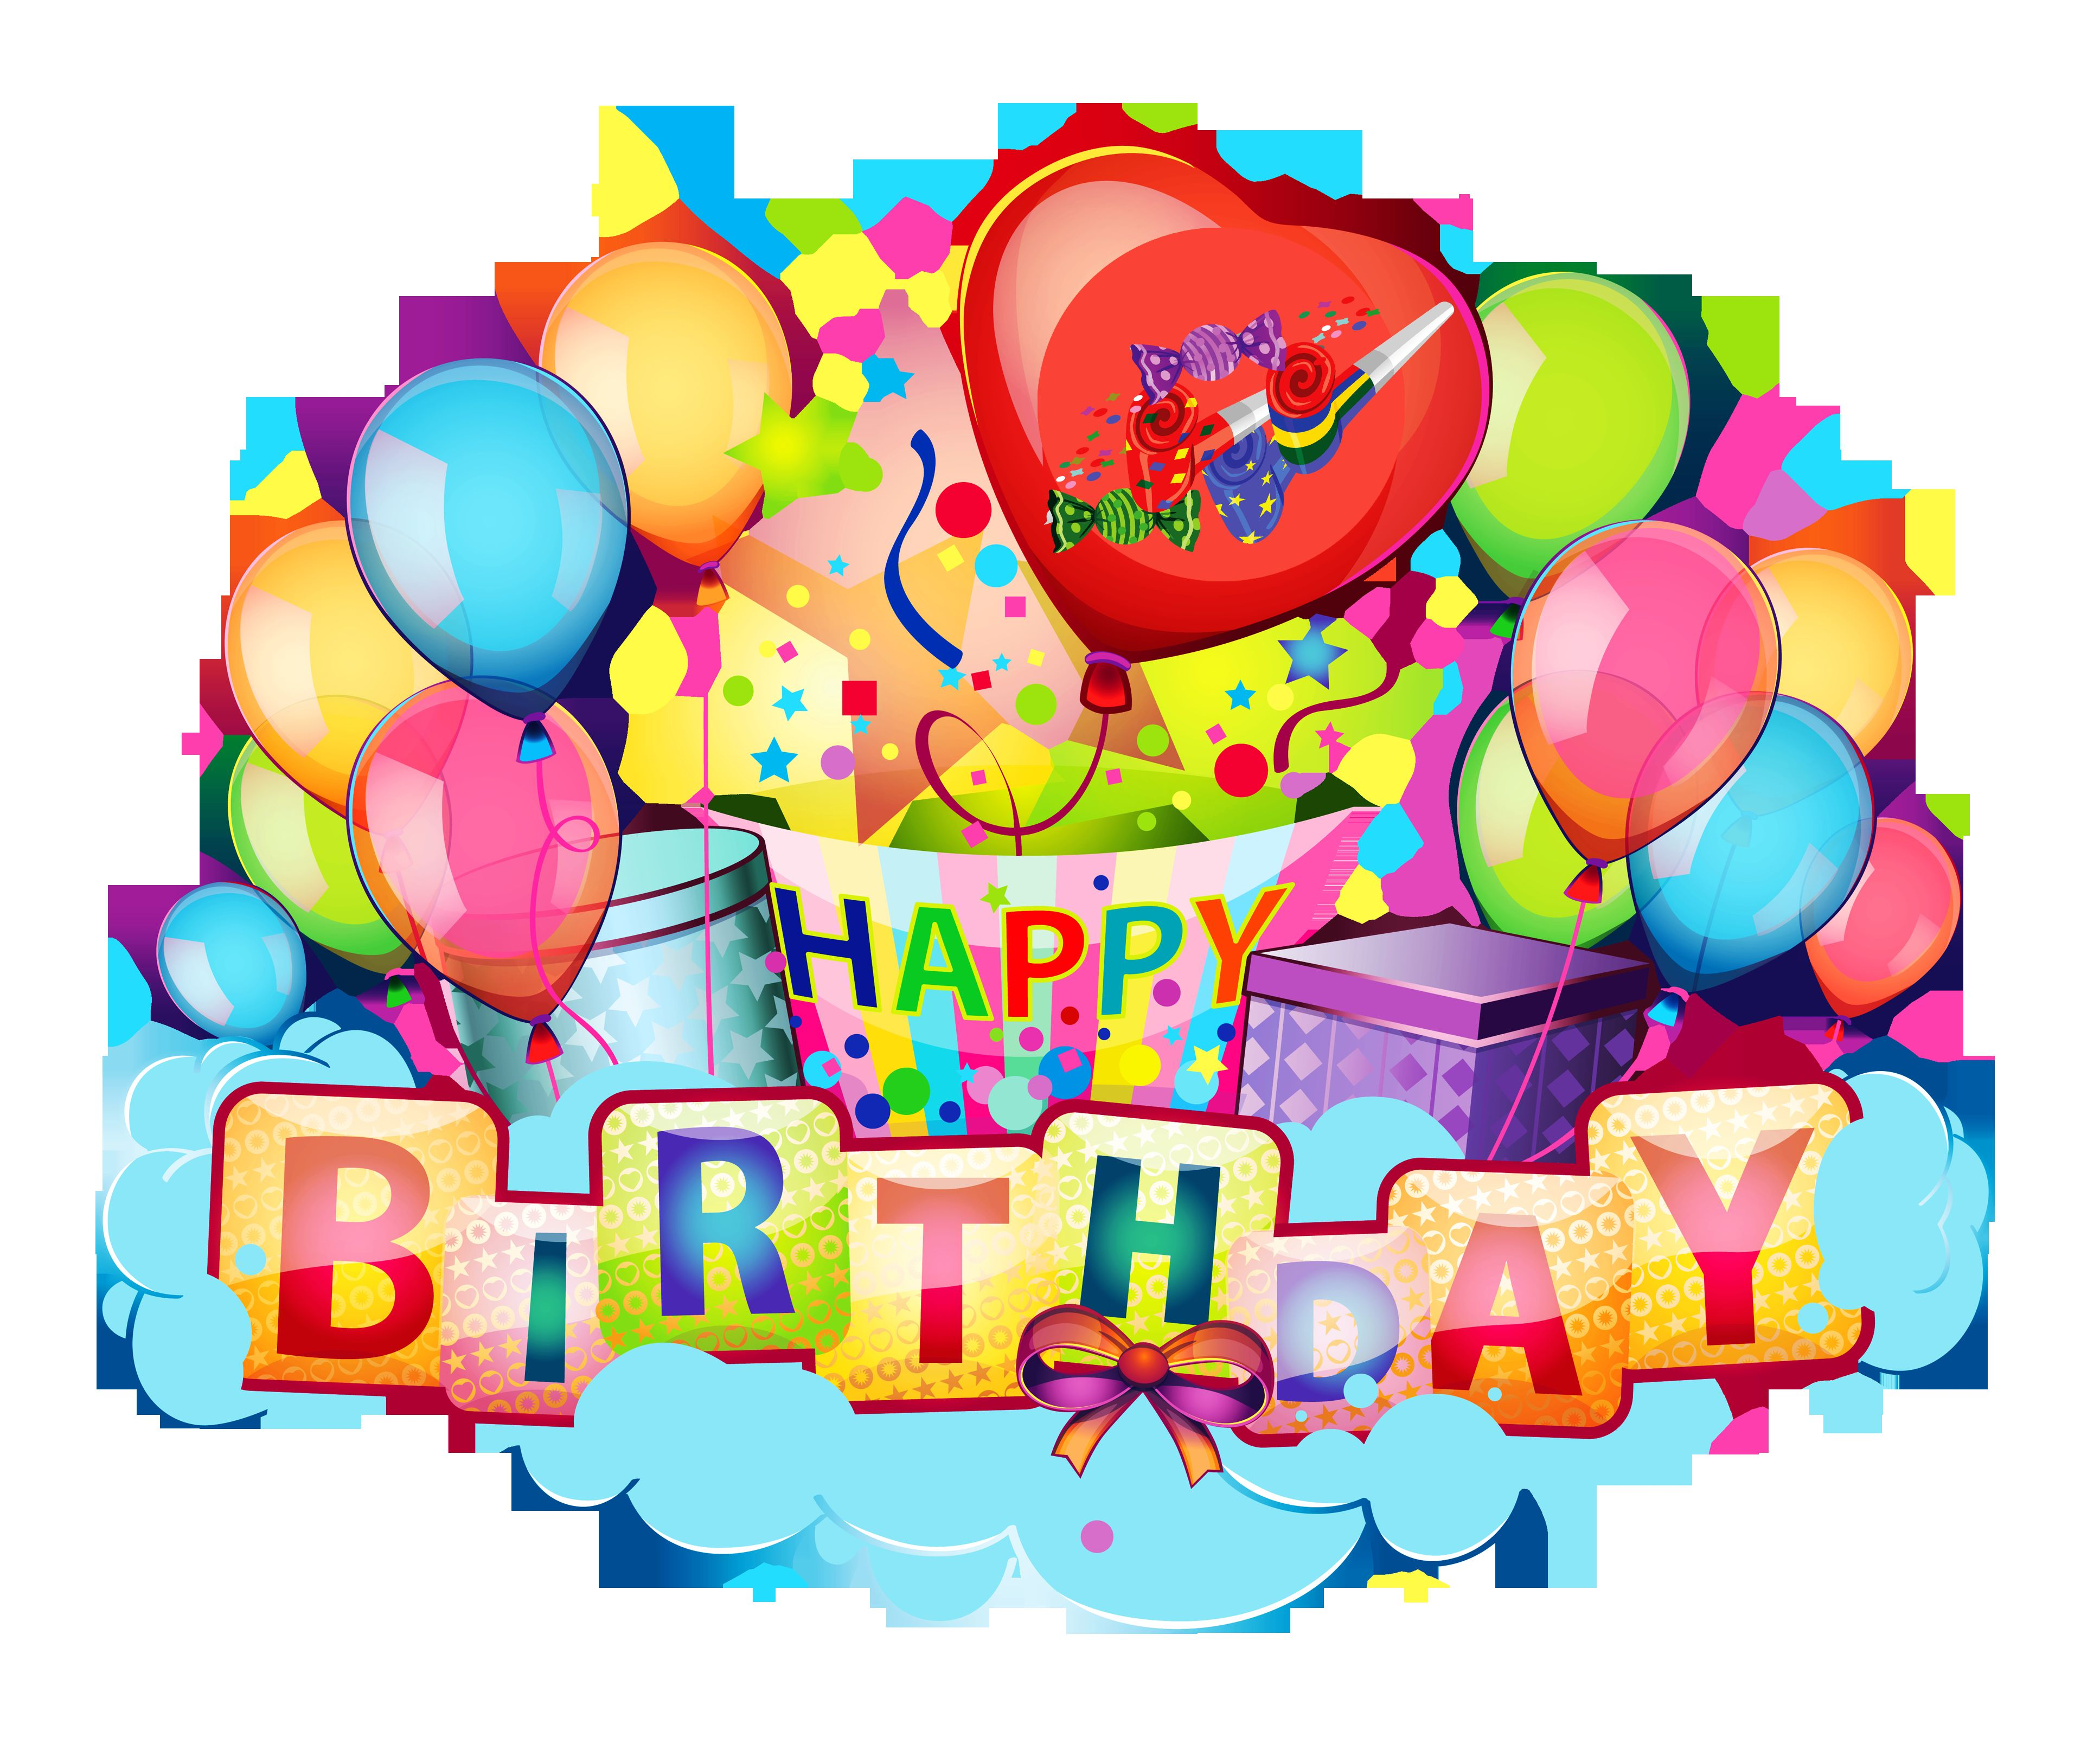 Facebook clipart birthday image library library Facebook clipart birthday - ClipartFest image library library